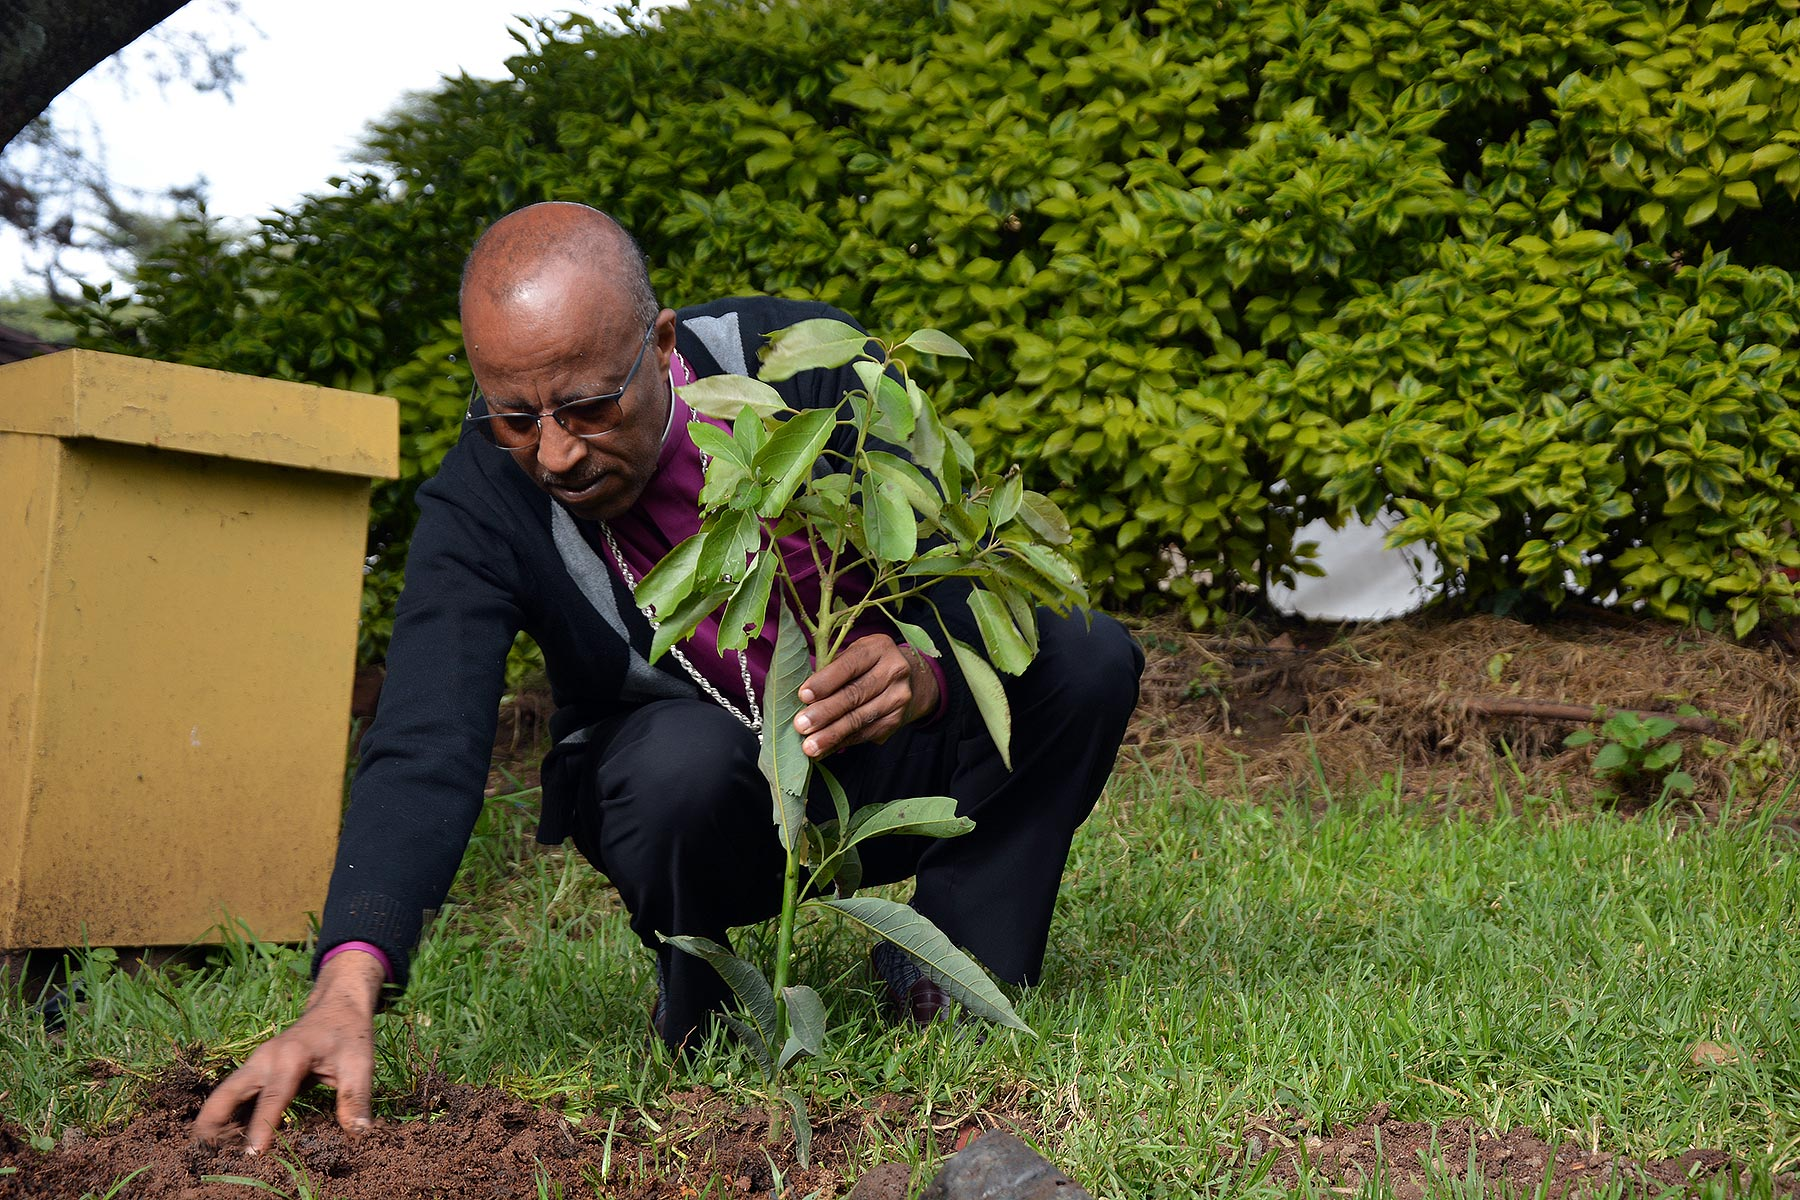 EECMY President Rev. Yonas Yigezu Dibisa plants a tree in the church compound in Addis Ababa. EECMY/Abeya Wakwoya